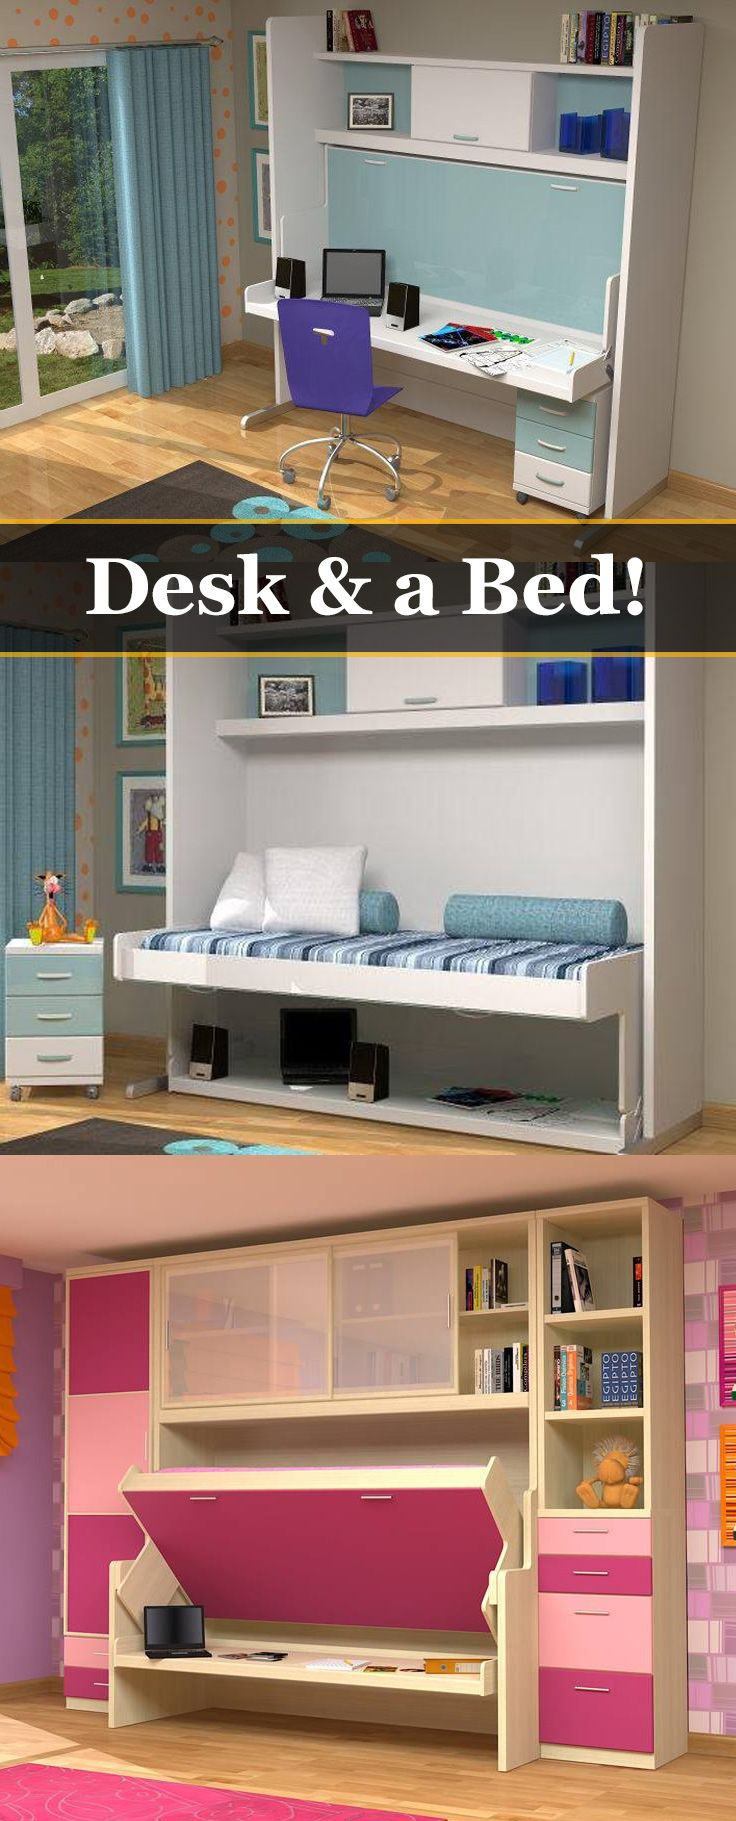 This space-saving system converts your bed to a full-featured desk in only seconds! I love this idea, this would be great in the kiddo's room.